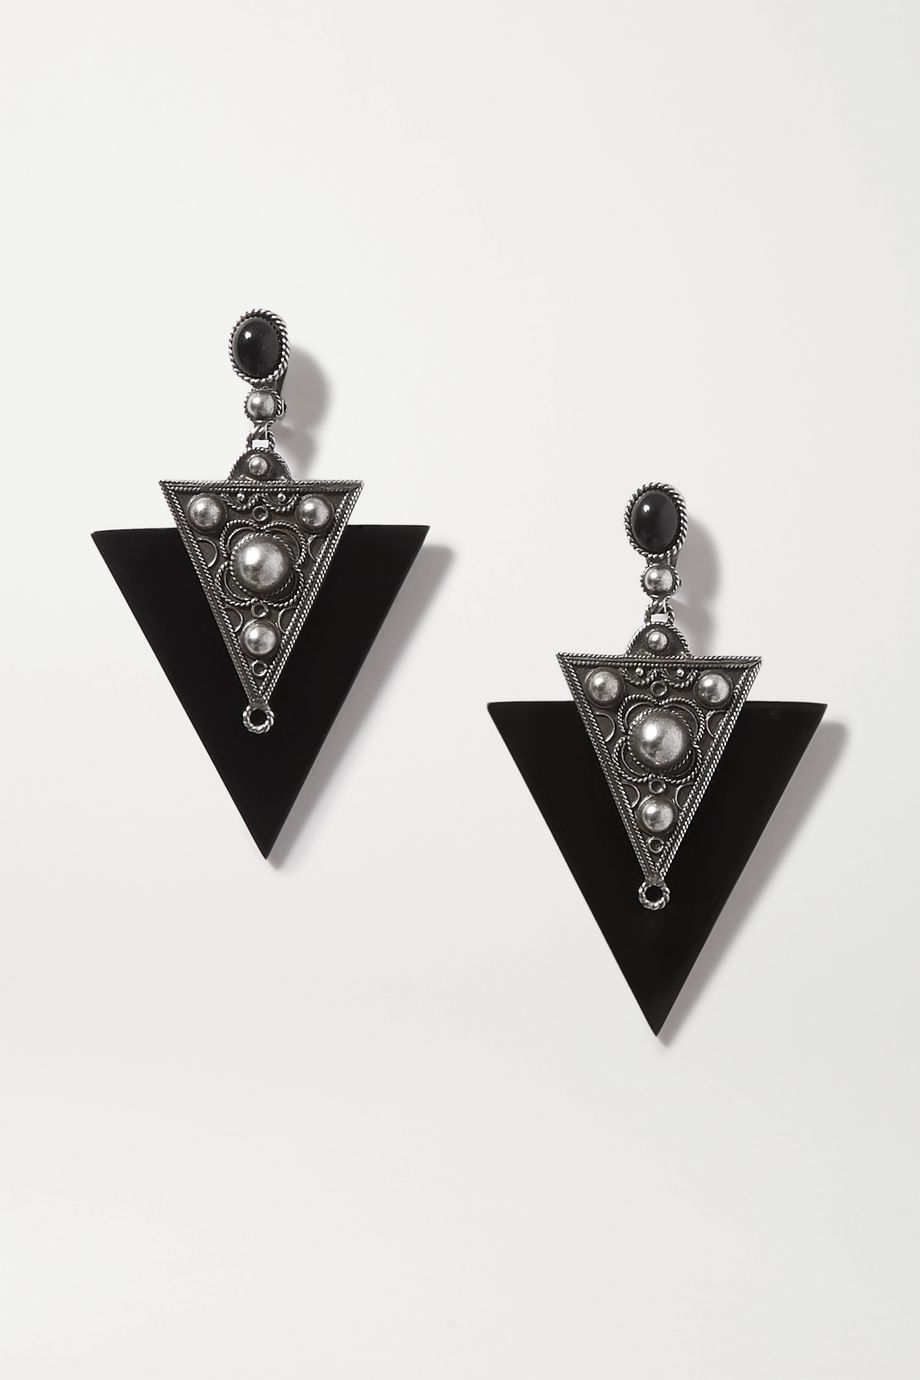 SAINT LAURENT Blackened silver-tone and enamel clip earrings